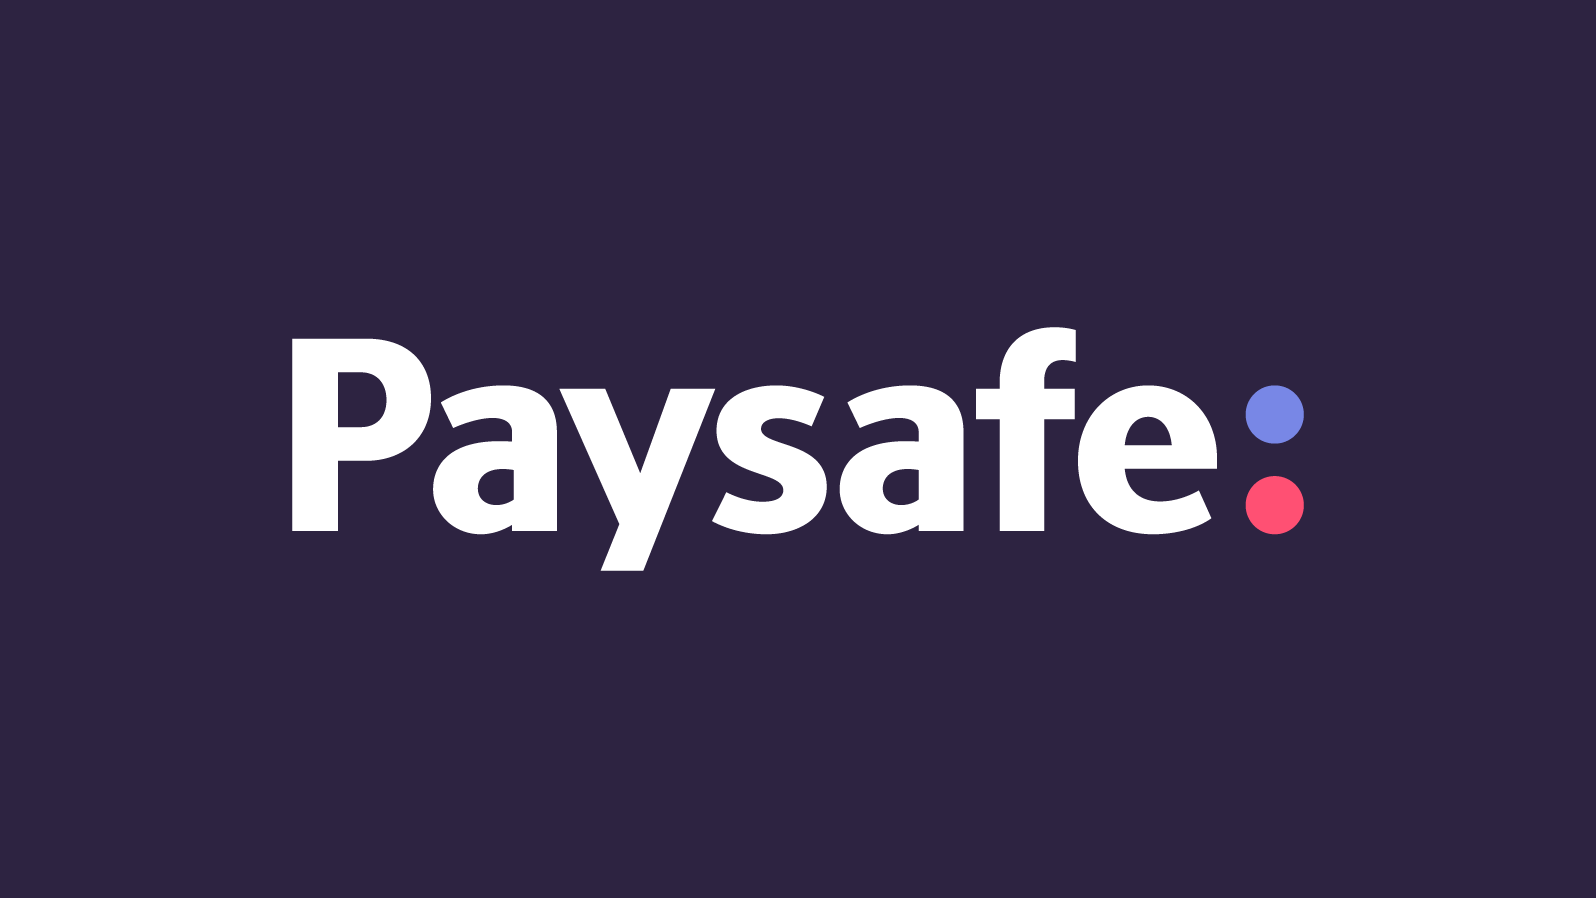 Paysafe completes acquisition of iPayment